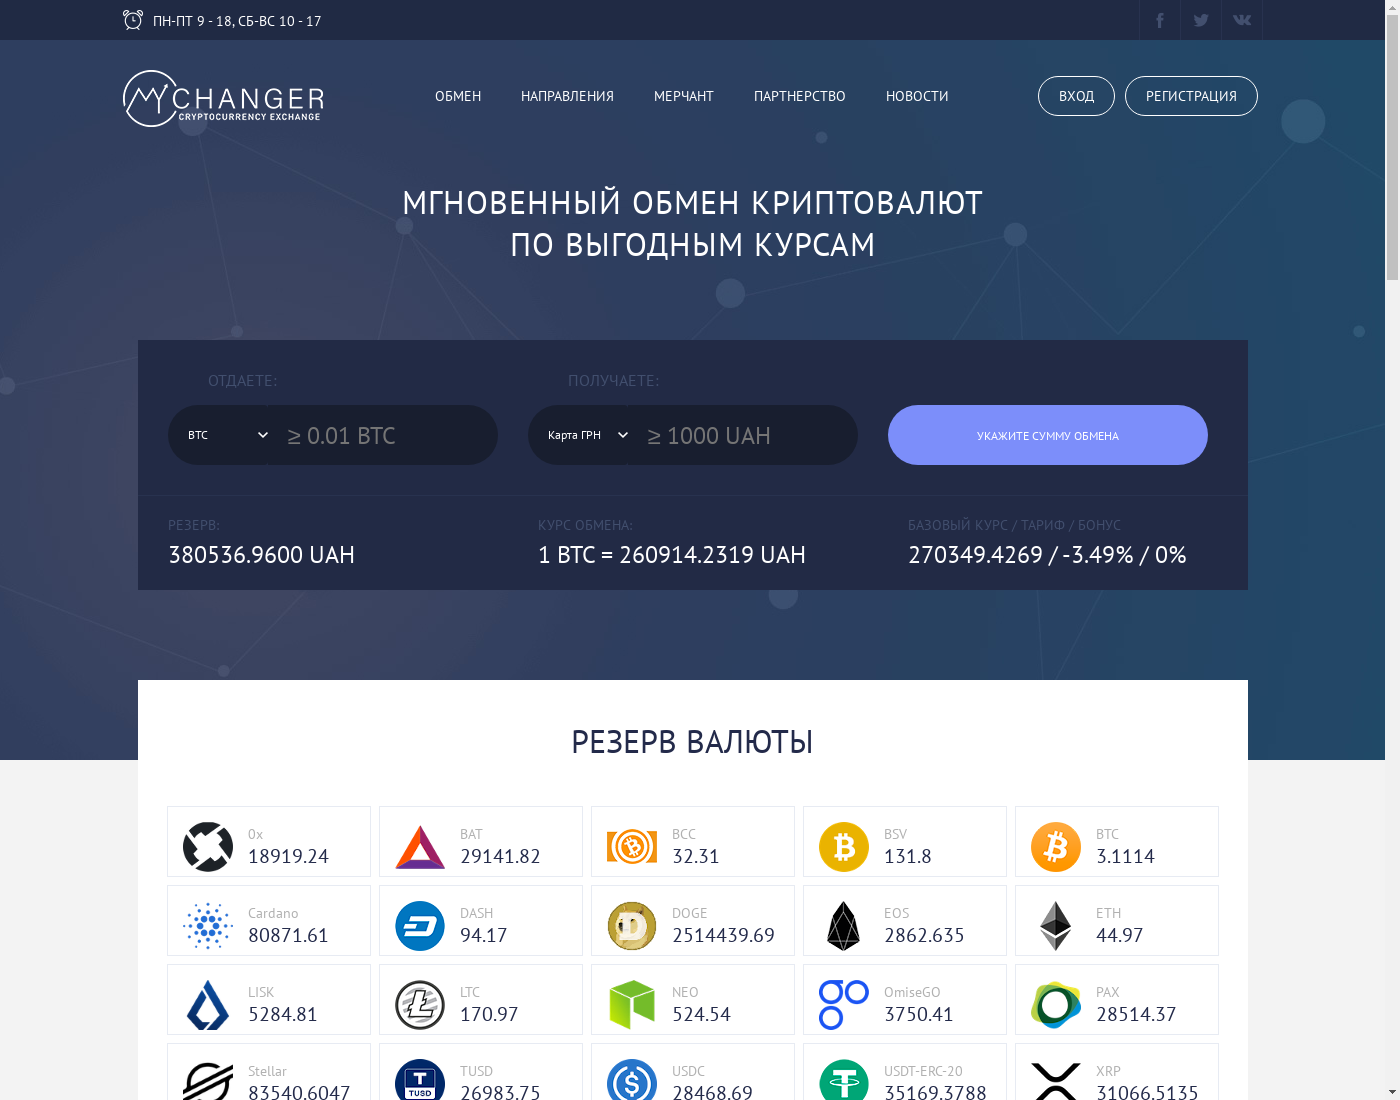 MyChanger user interface: the home page in English